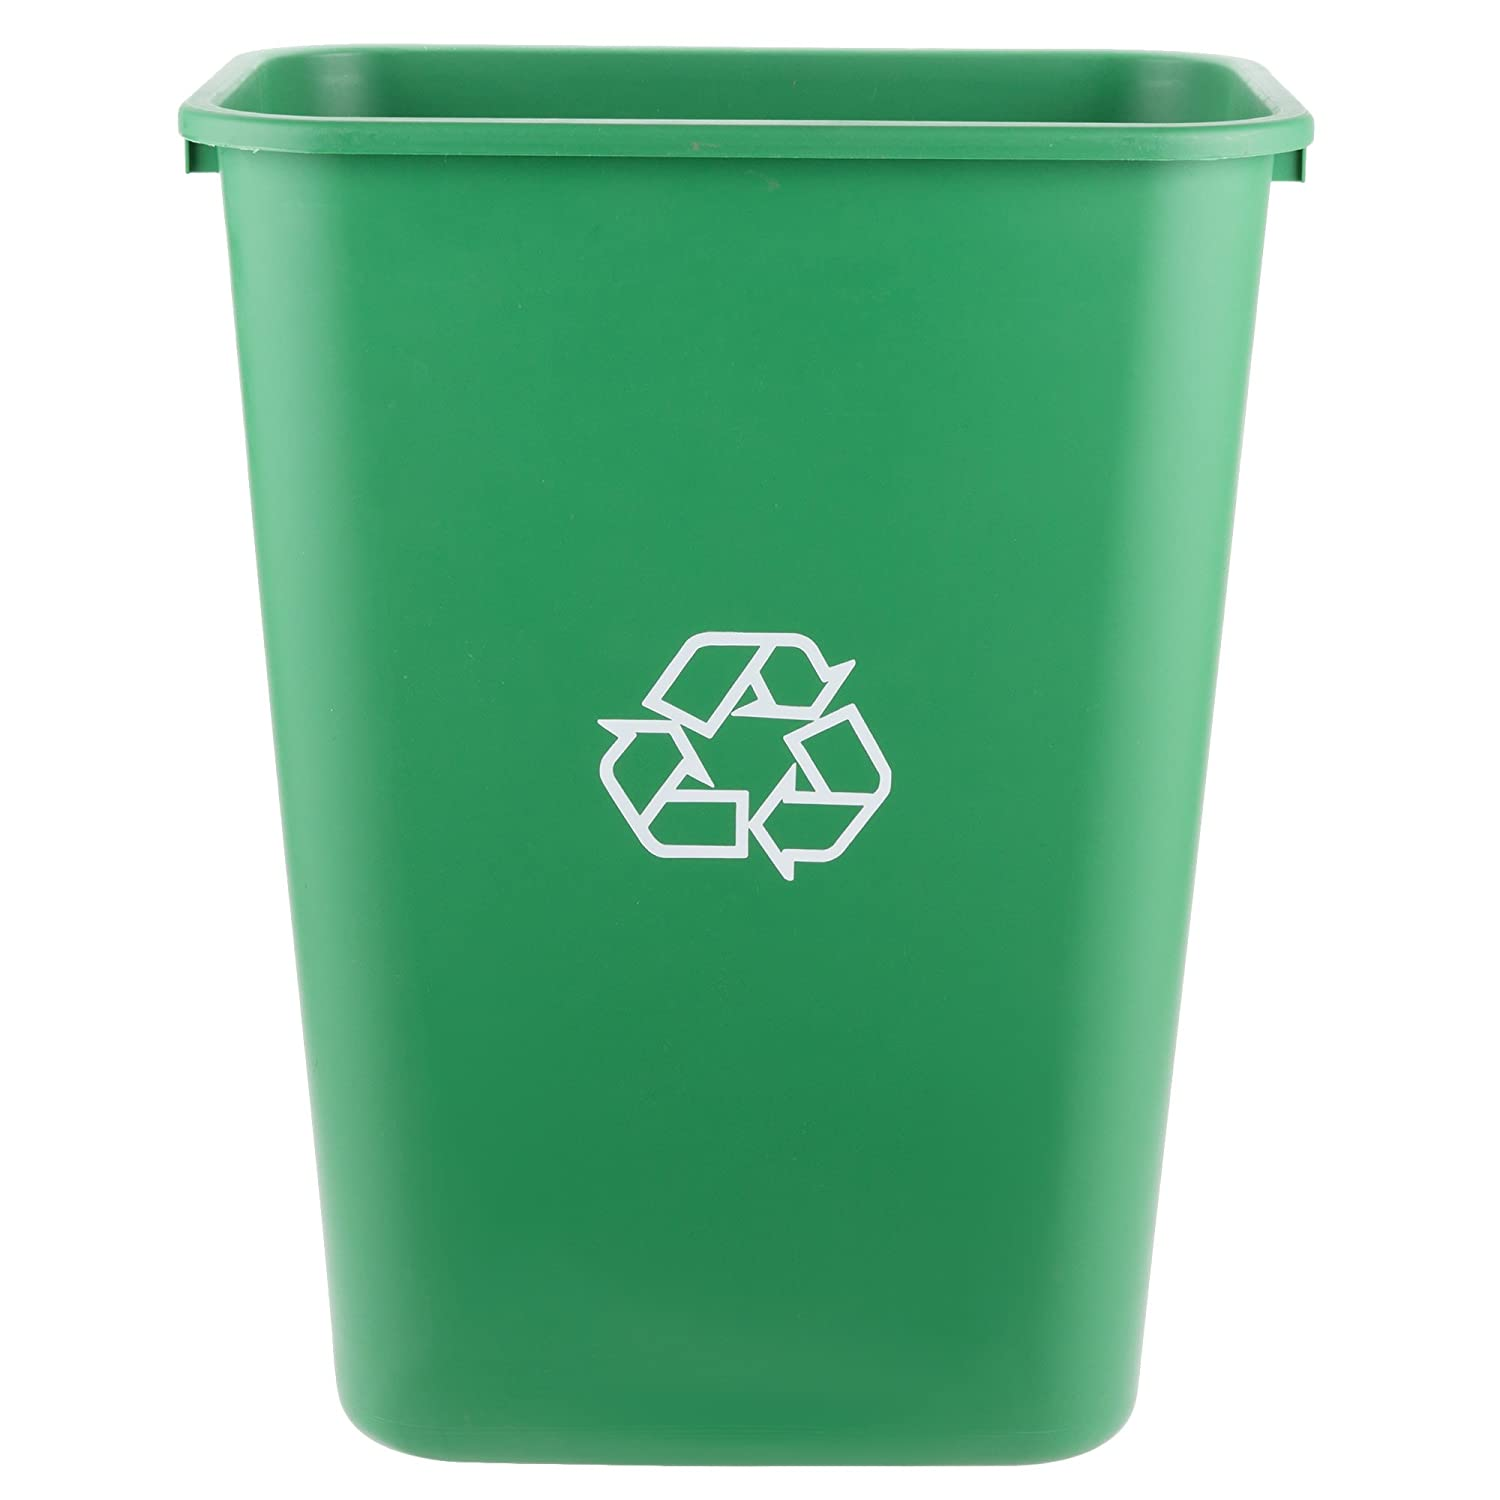 TableTop King 41 25% OFF Qt. 10 Was Mail order Gallon Recycling Green Rectangular